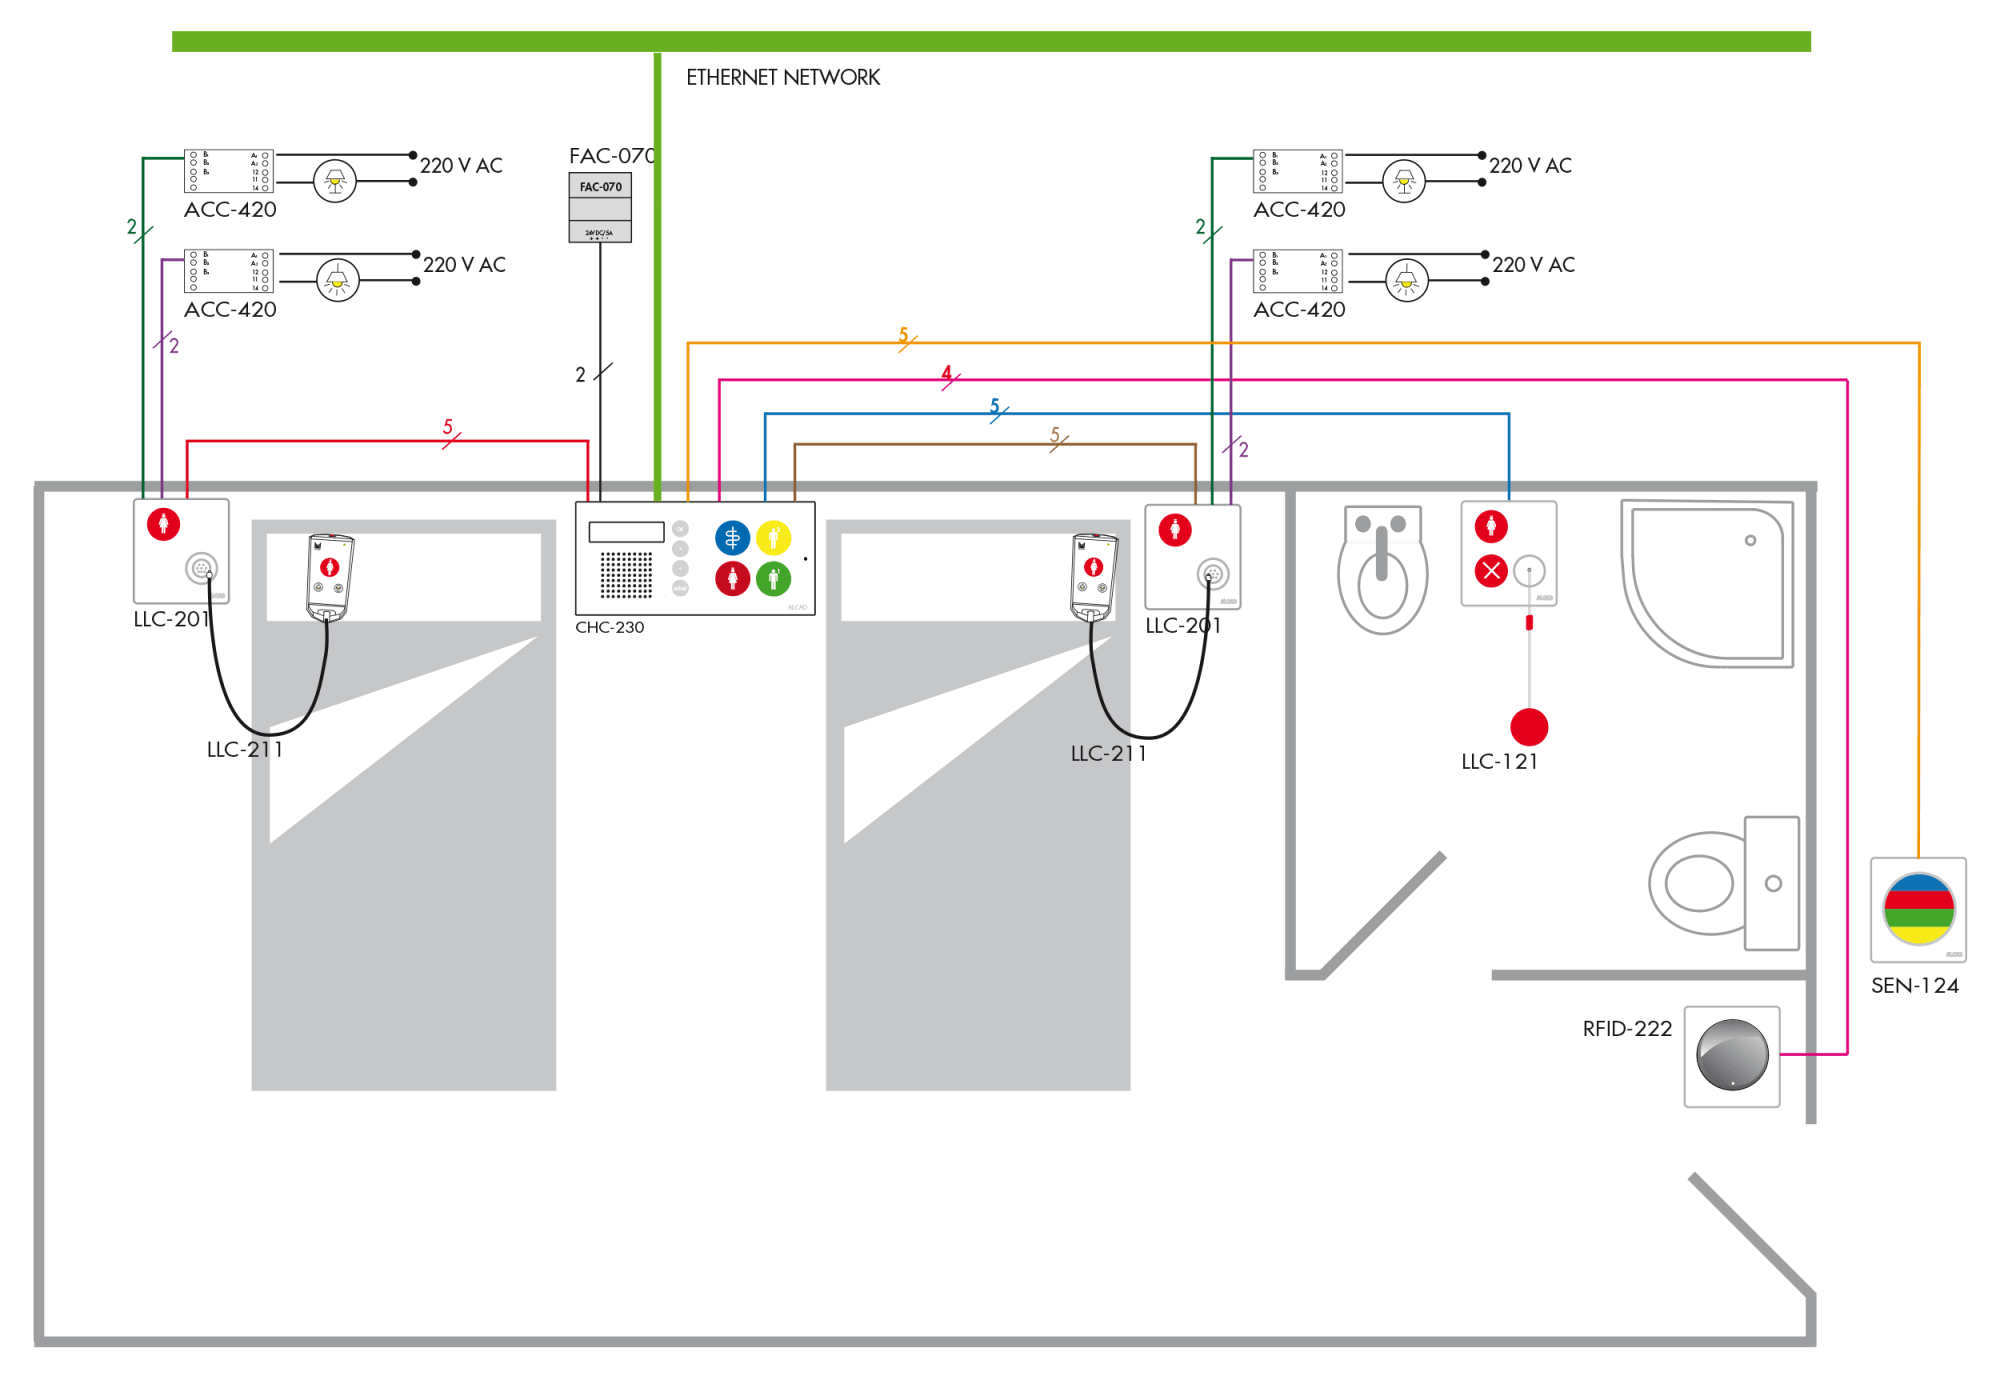 hight resolution of schematic of multiple rooms without audio and 2 colours via the chc 129 control panel